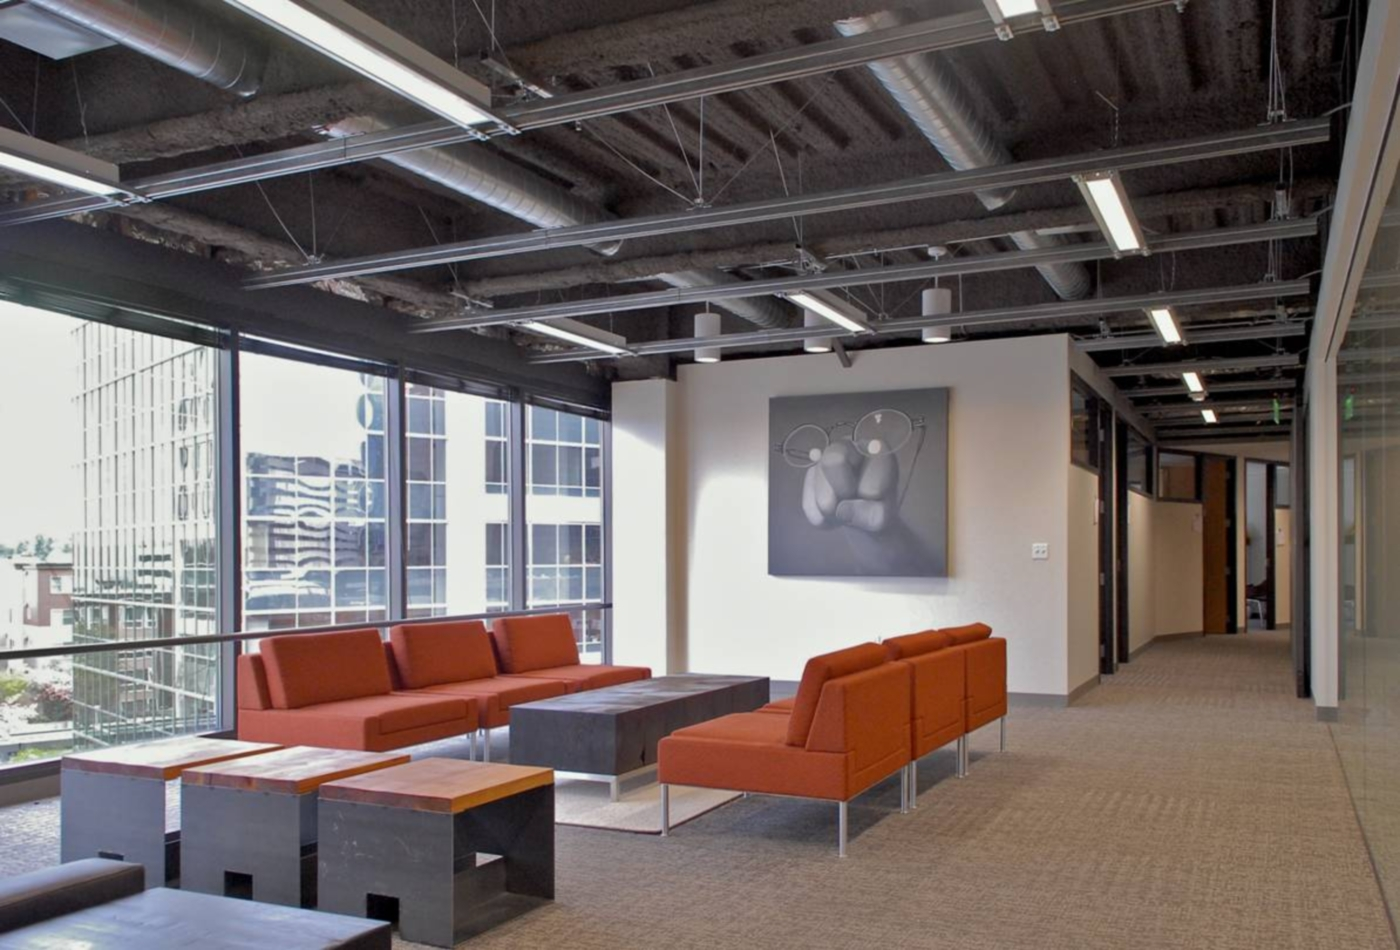 Best 40 office ceiling design inspiration of meshed cloud office 32 best industrial office ceiling images on pinterest office dailygadgetfo Gallery